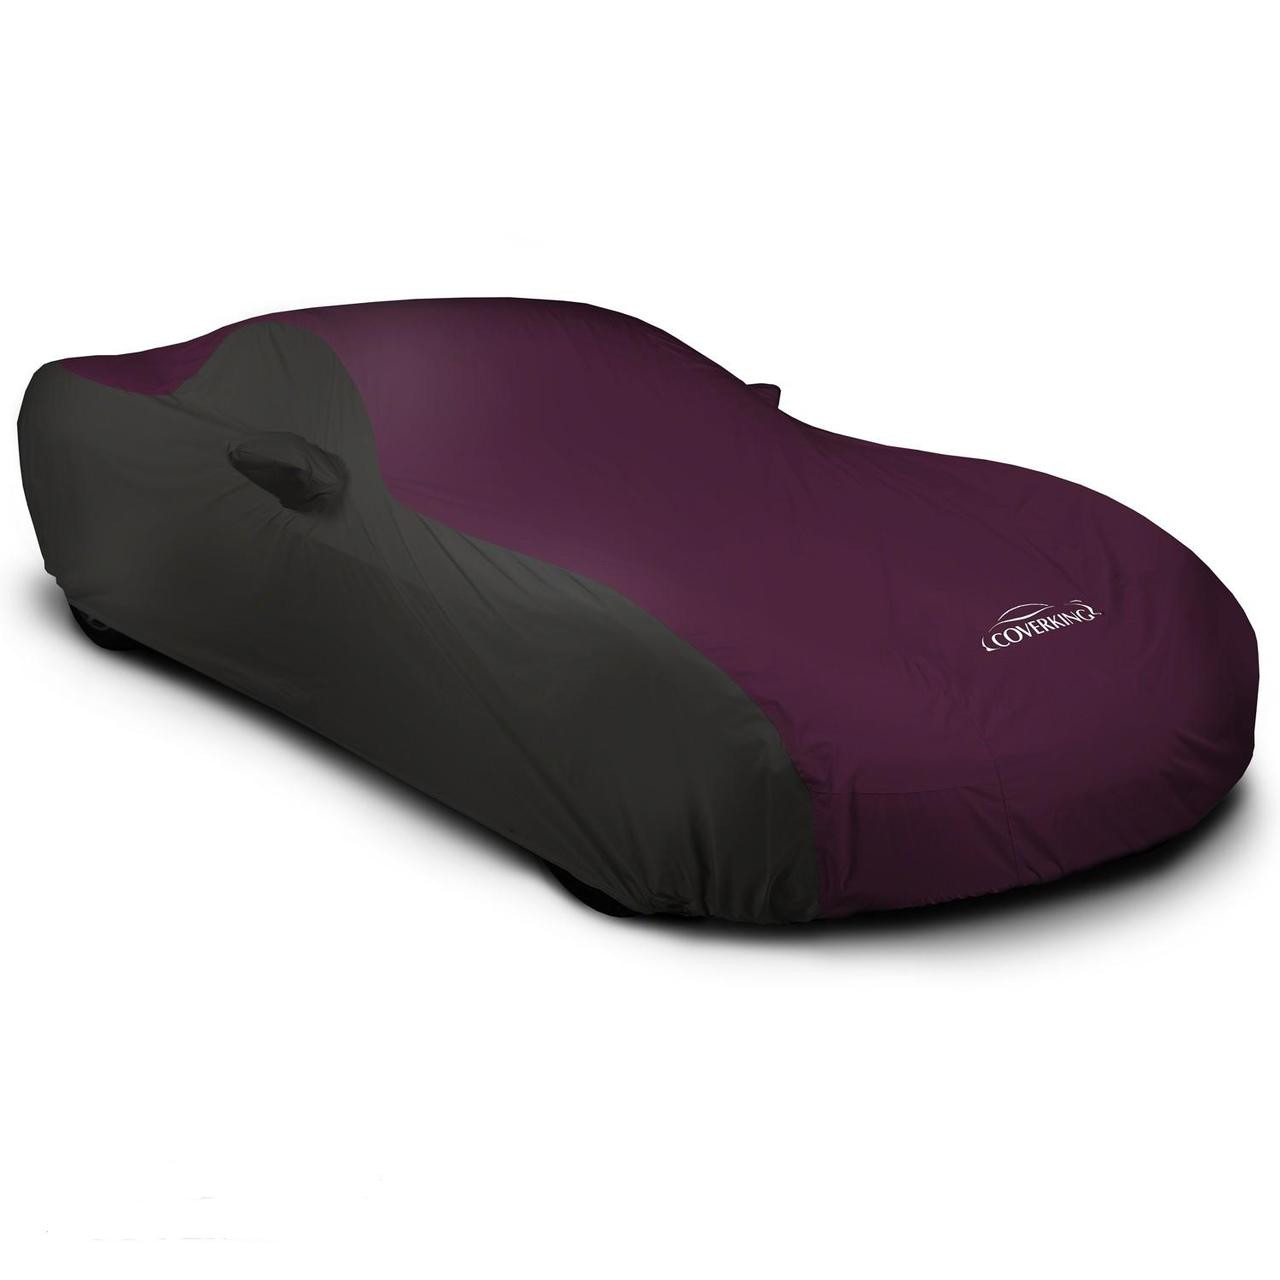 Corvette Outdoor Car Cover black/maroon